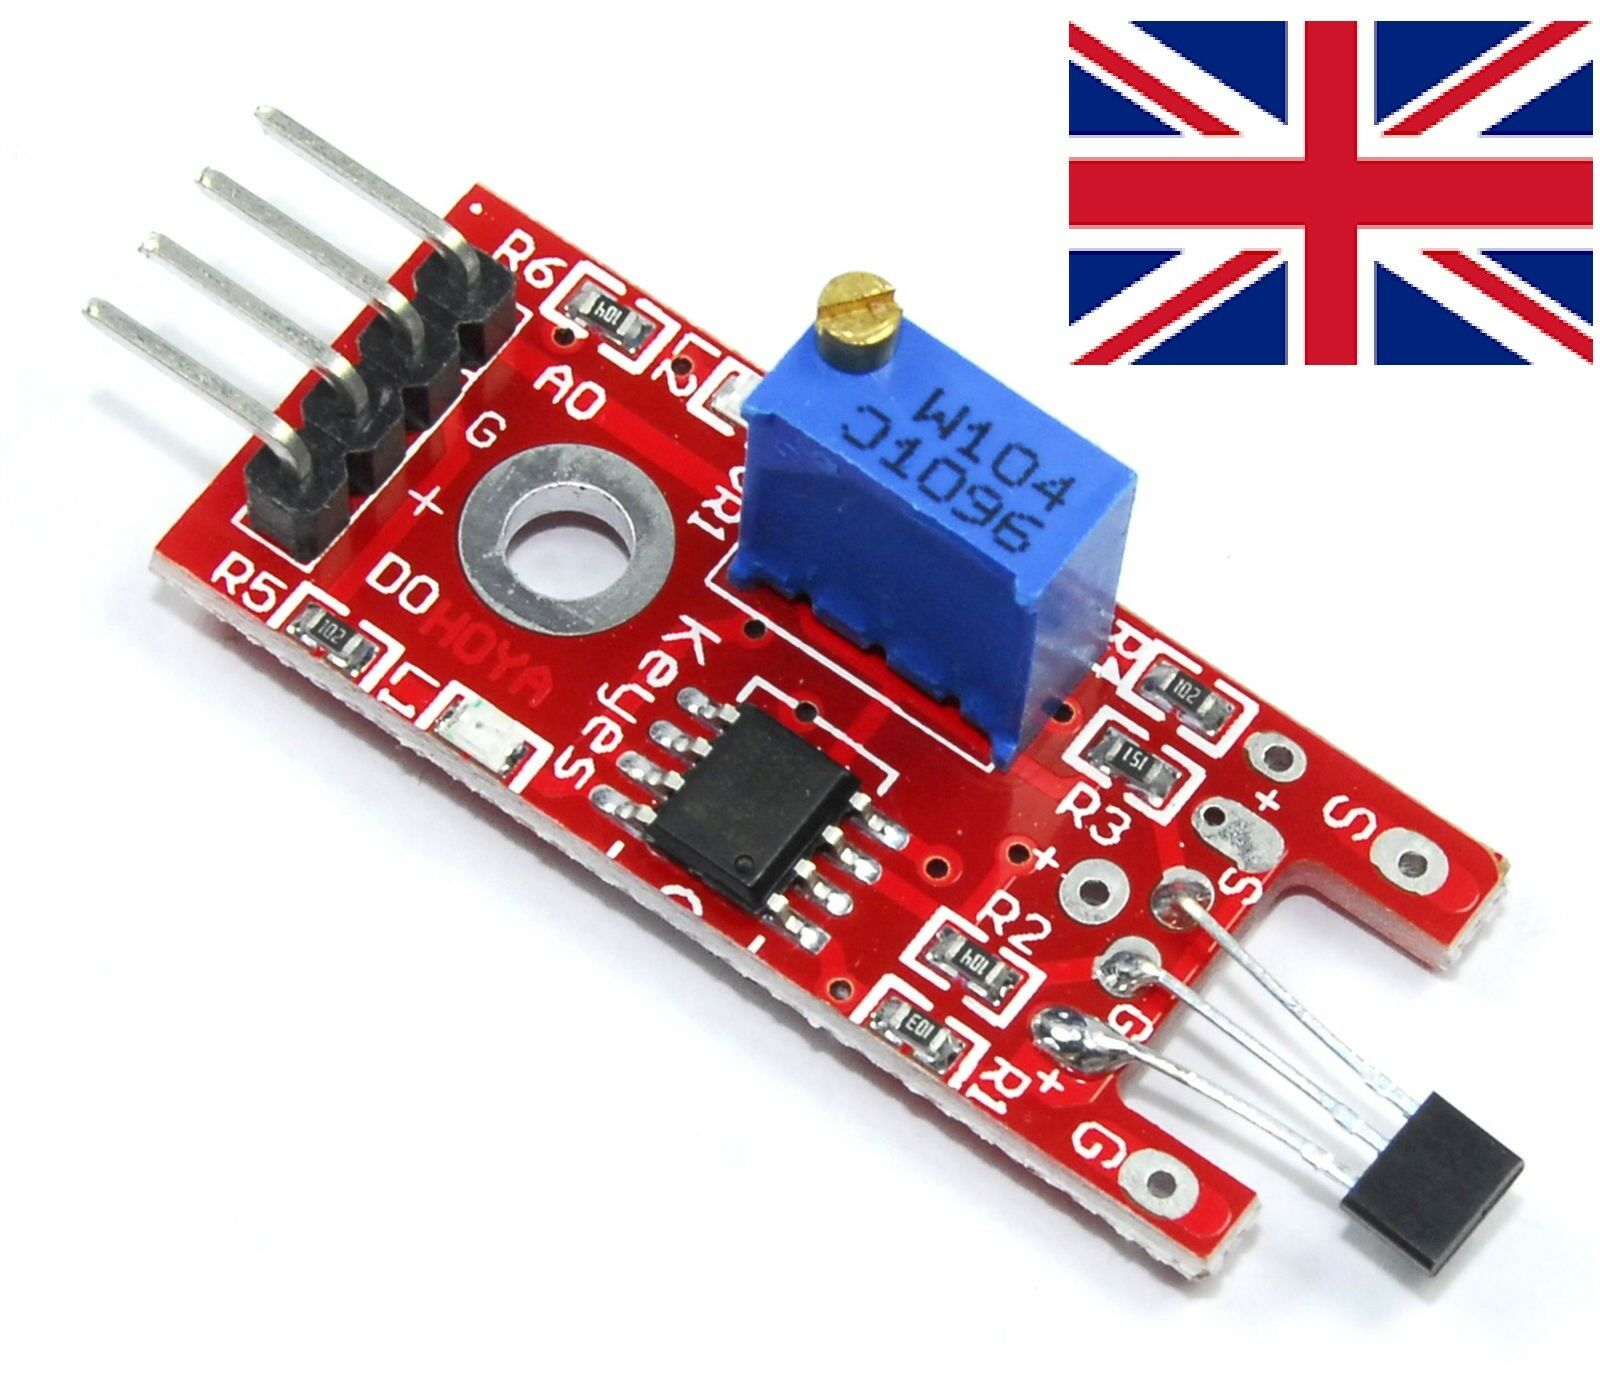 KY-024 Linear Magnetic Hall Effect Sensor Module Holzer LM393 Arduino Pic  ARD49